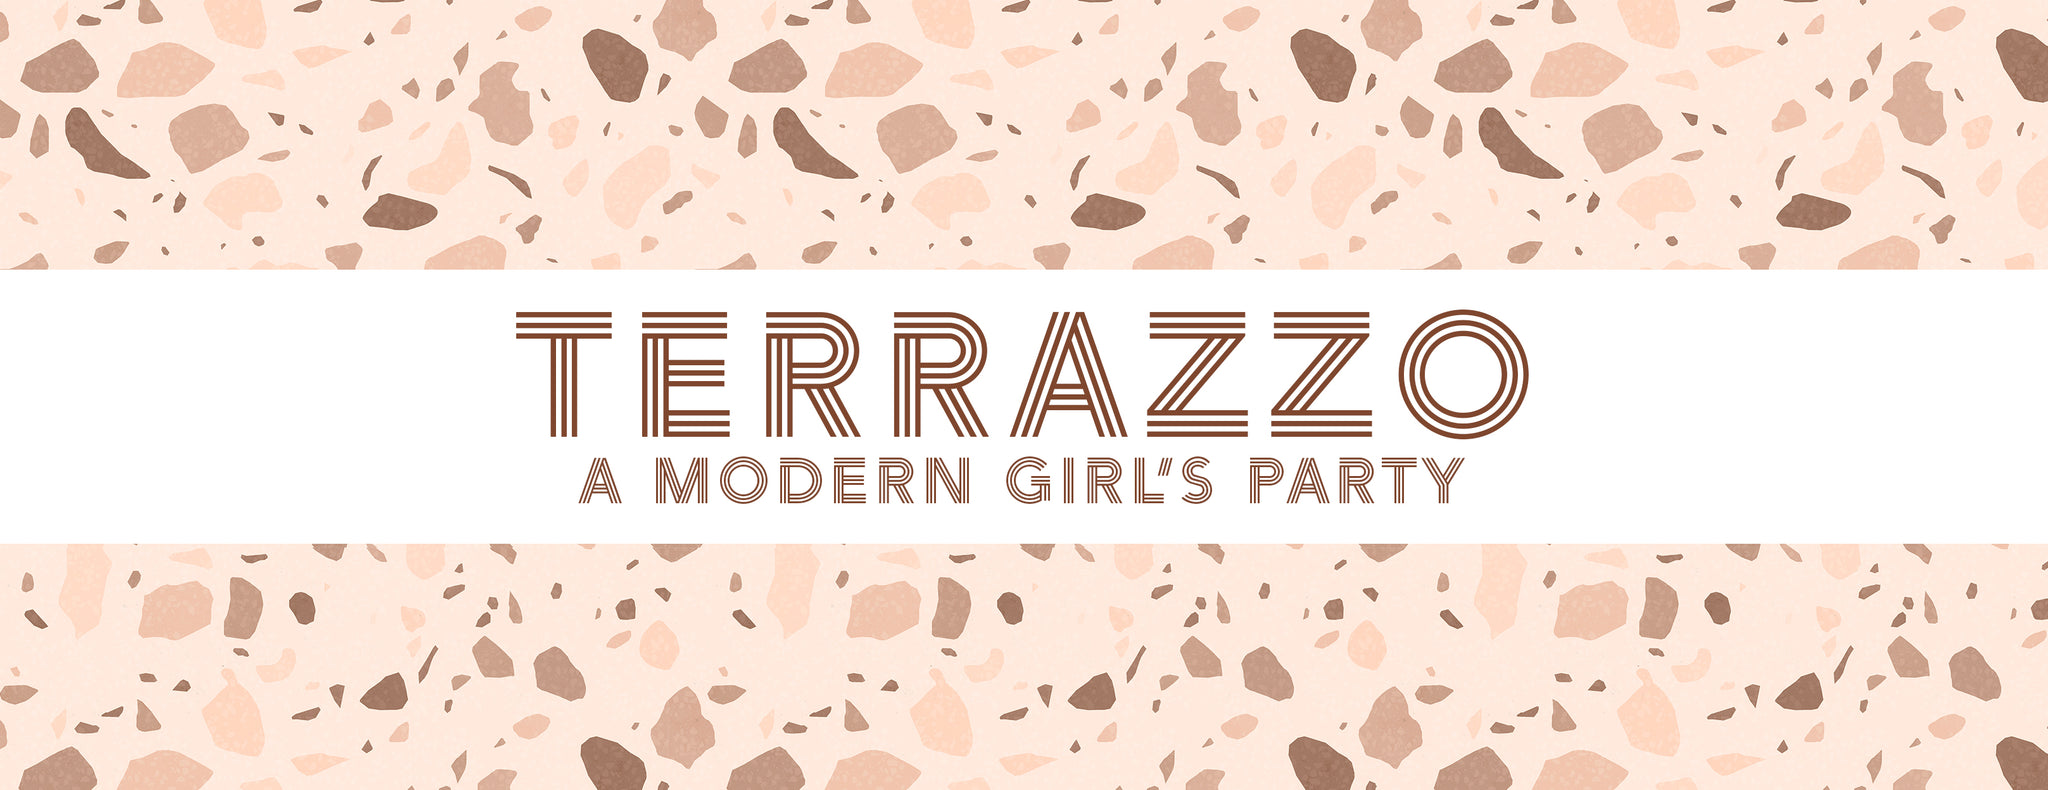 PARTY ET CIE EVENTS - TERRAZZO - A MODERN GIRL'S PARTY